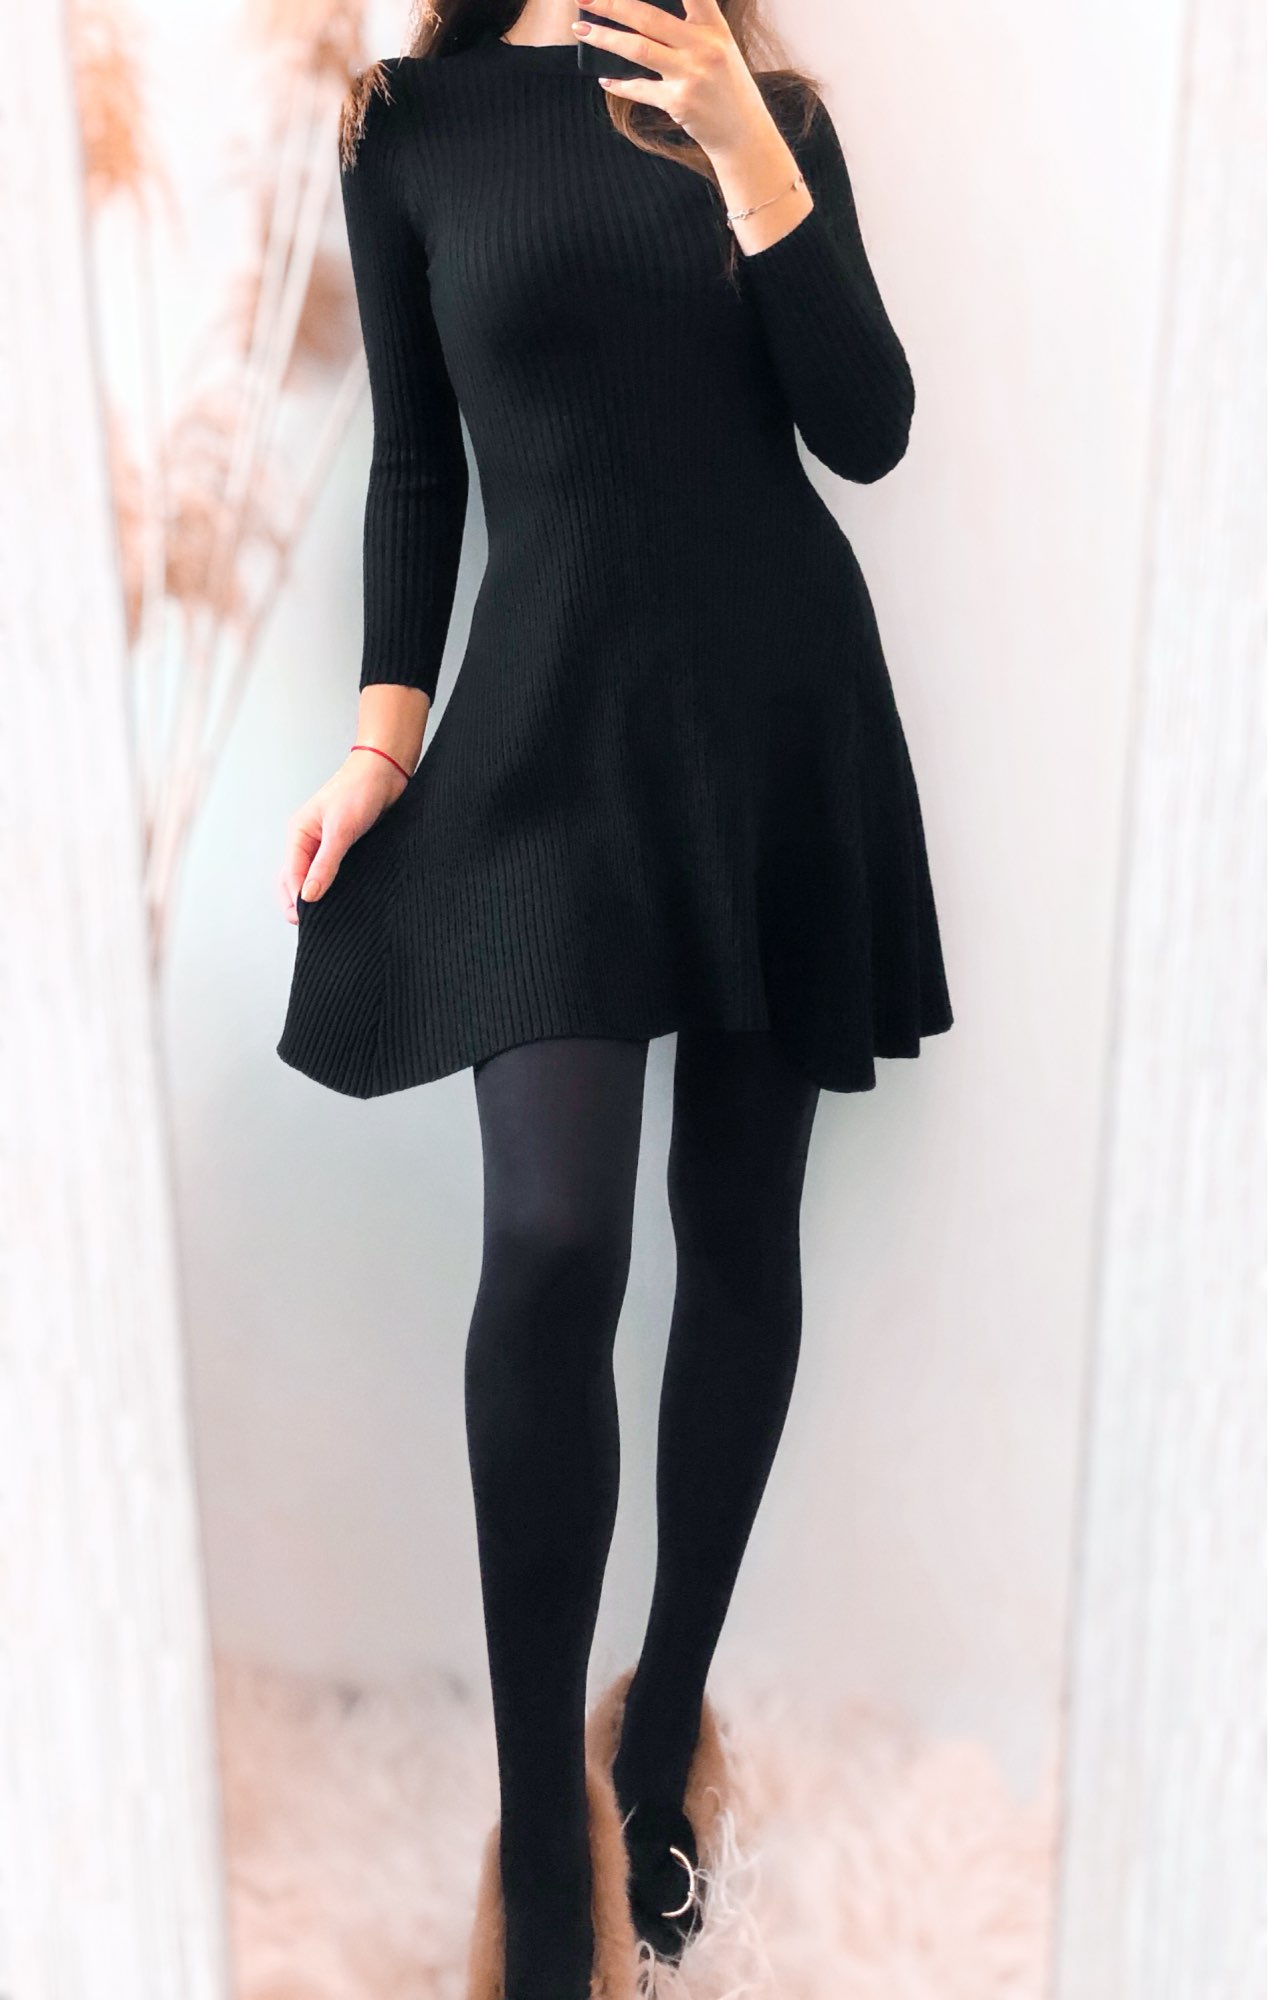 Women Long Sleeve Sweater Dress Women's Irregular Hem Casual Autumn Winter Dress Women O neck A Line Short Mini Knitted Dresses|Dresses|   - AliExpress